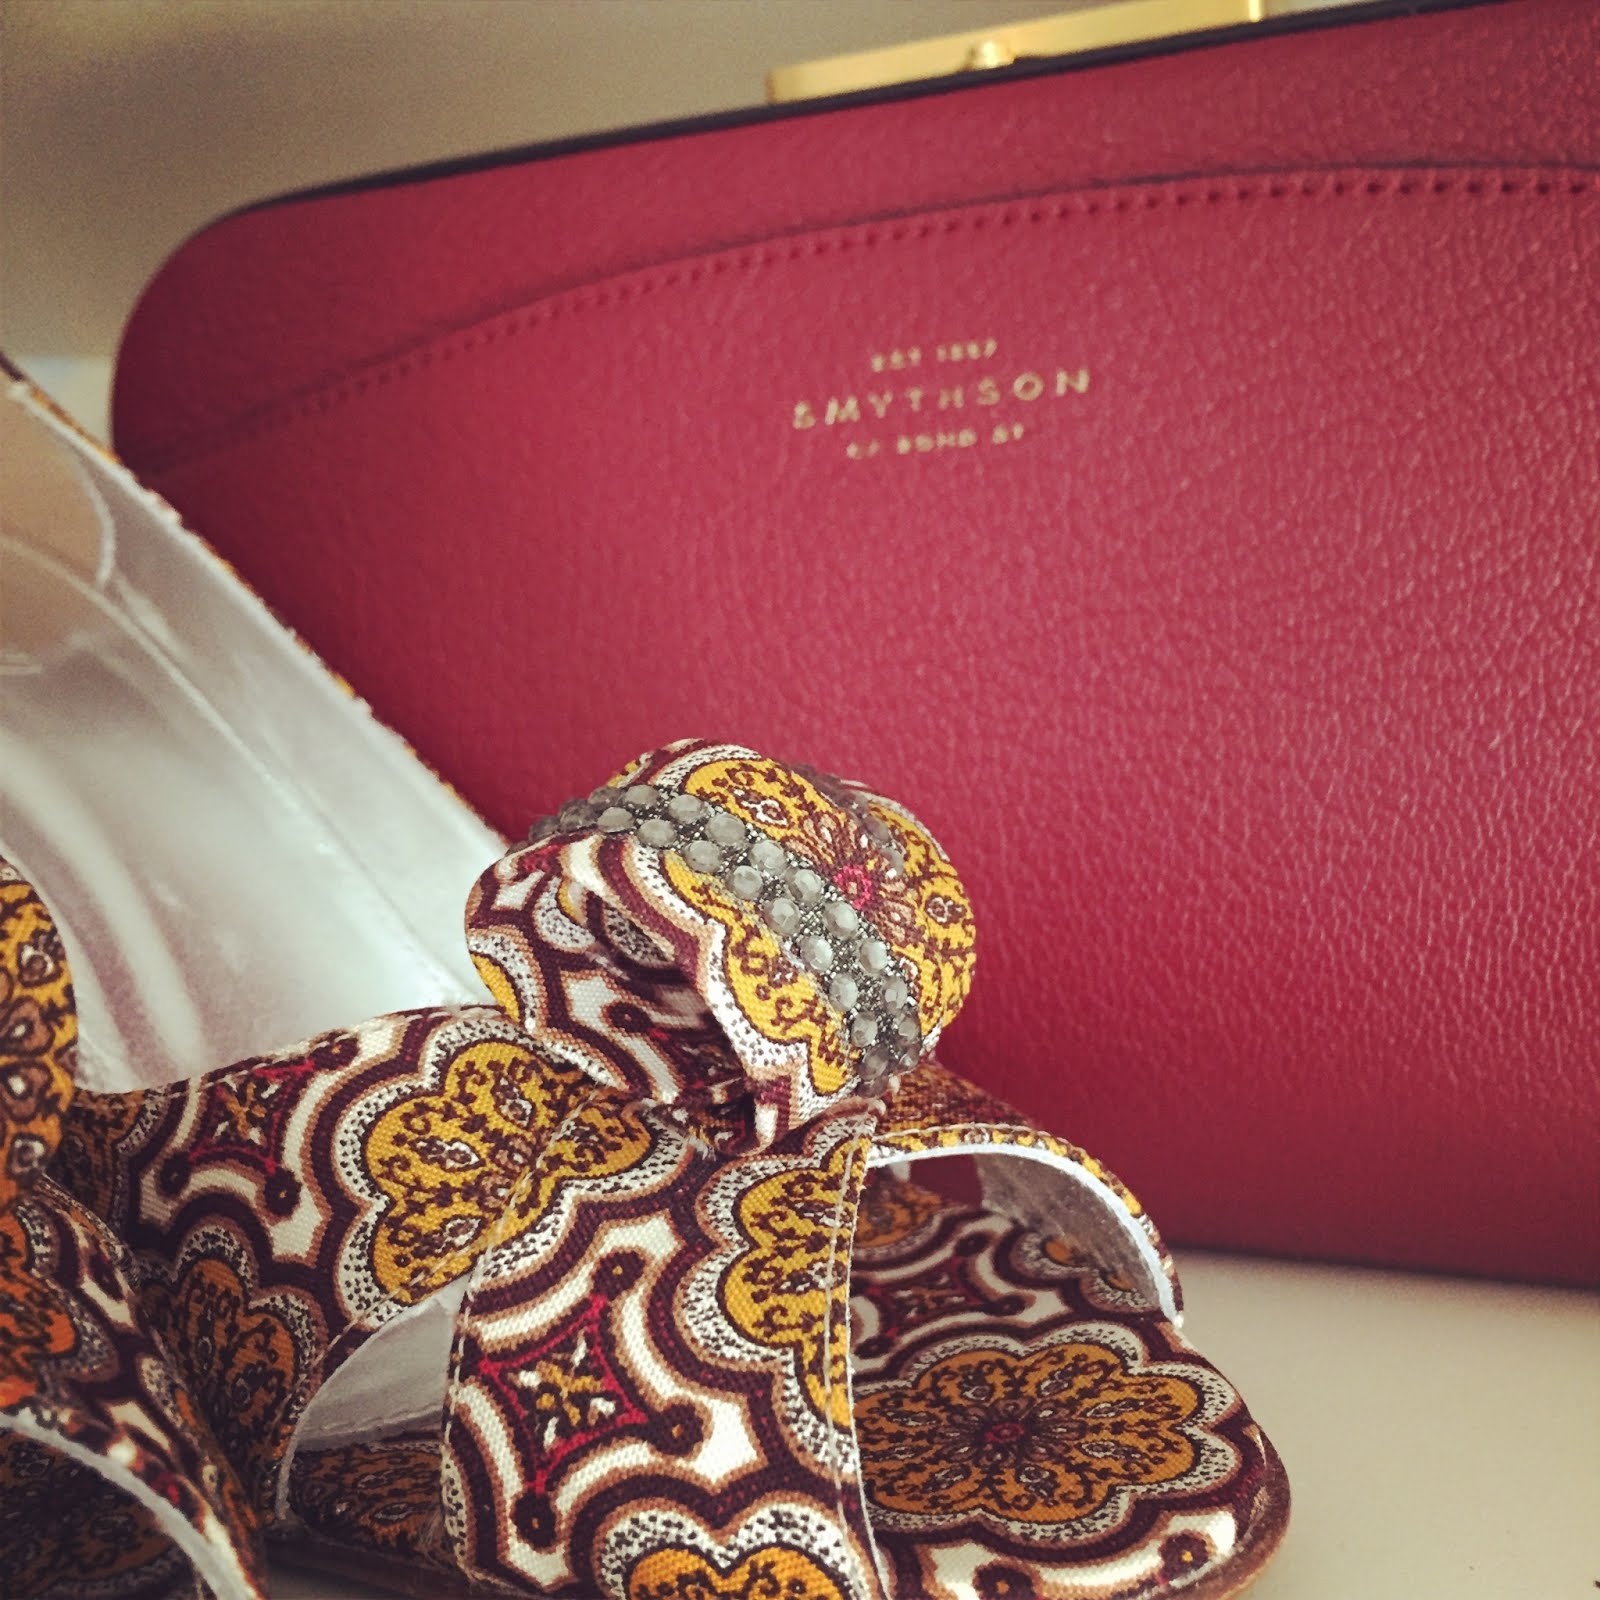 Patterned Heels and a Colourful Clutch